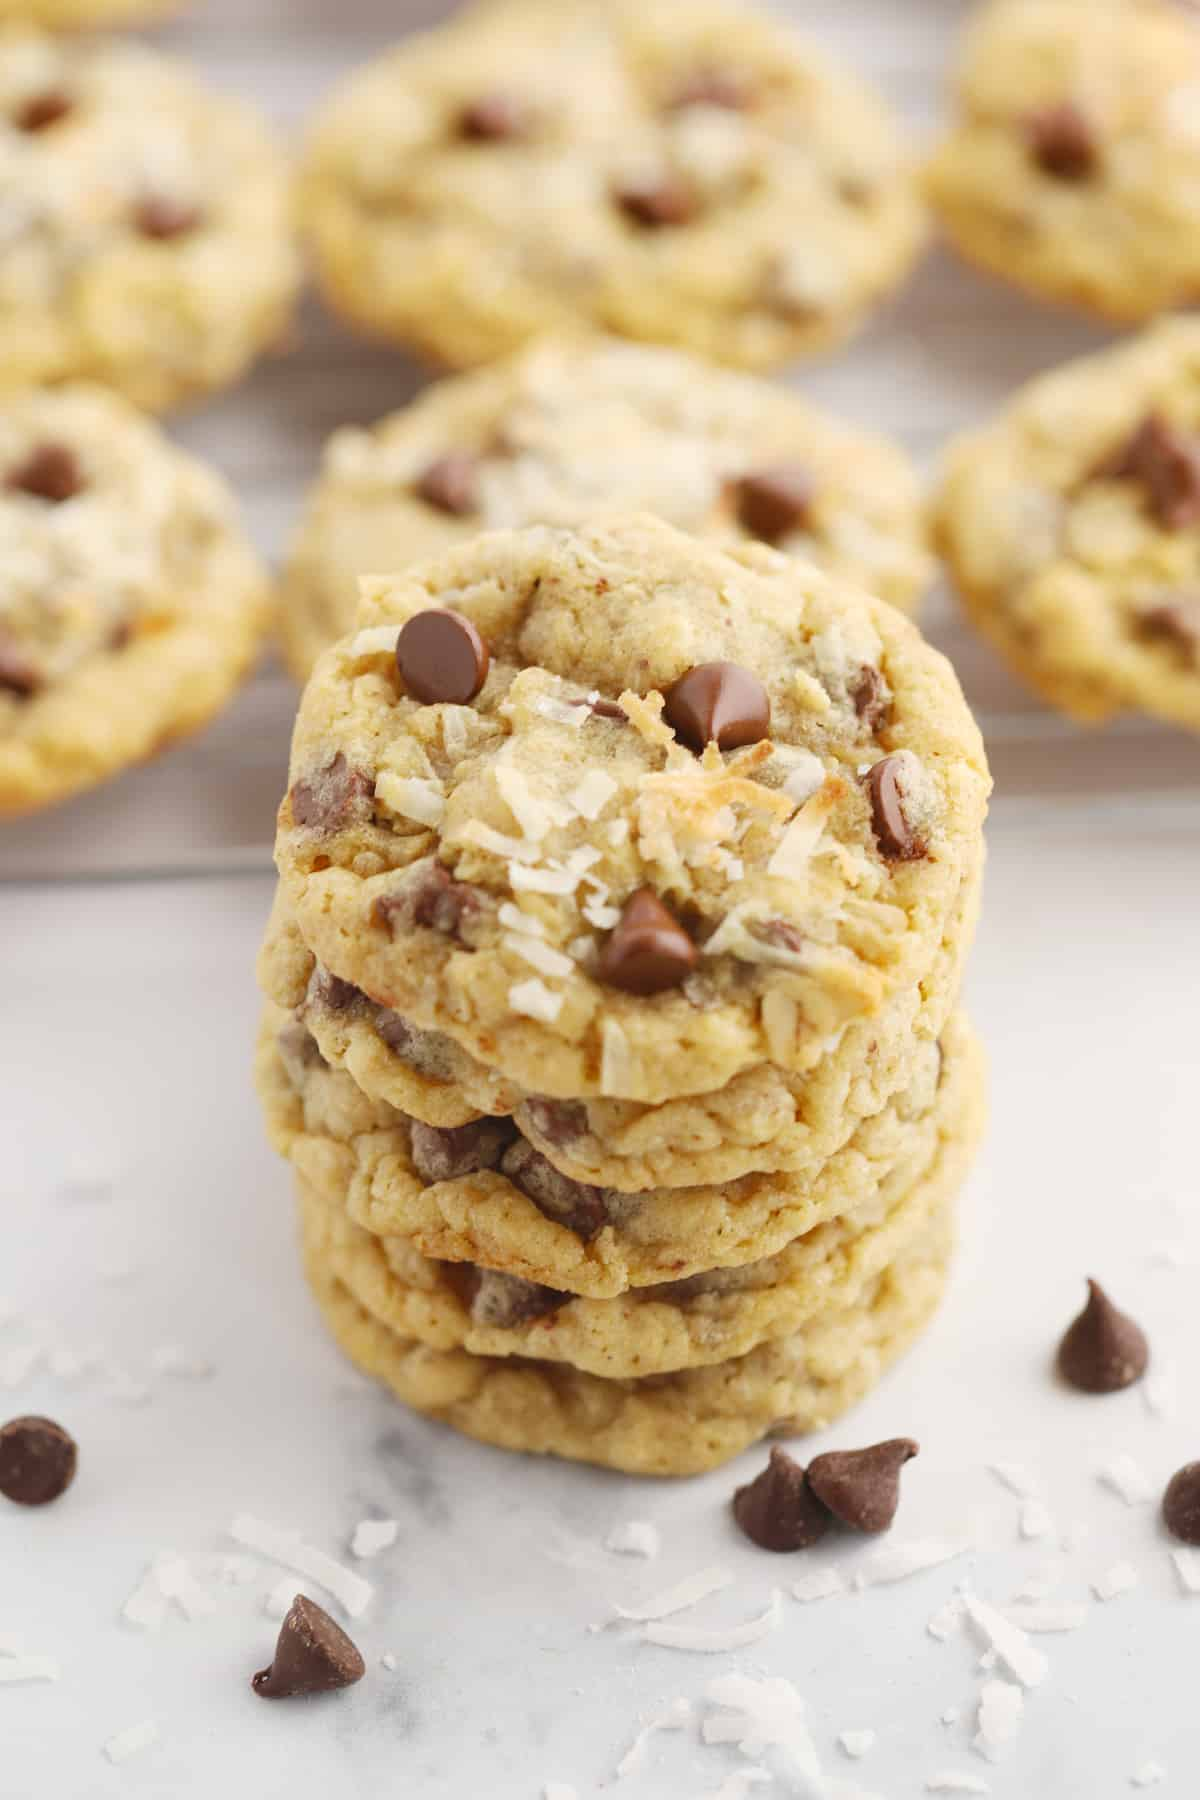 A stack of cookies topped with coconut and chocolate chips.